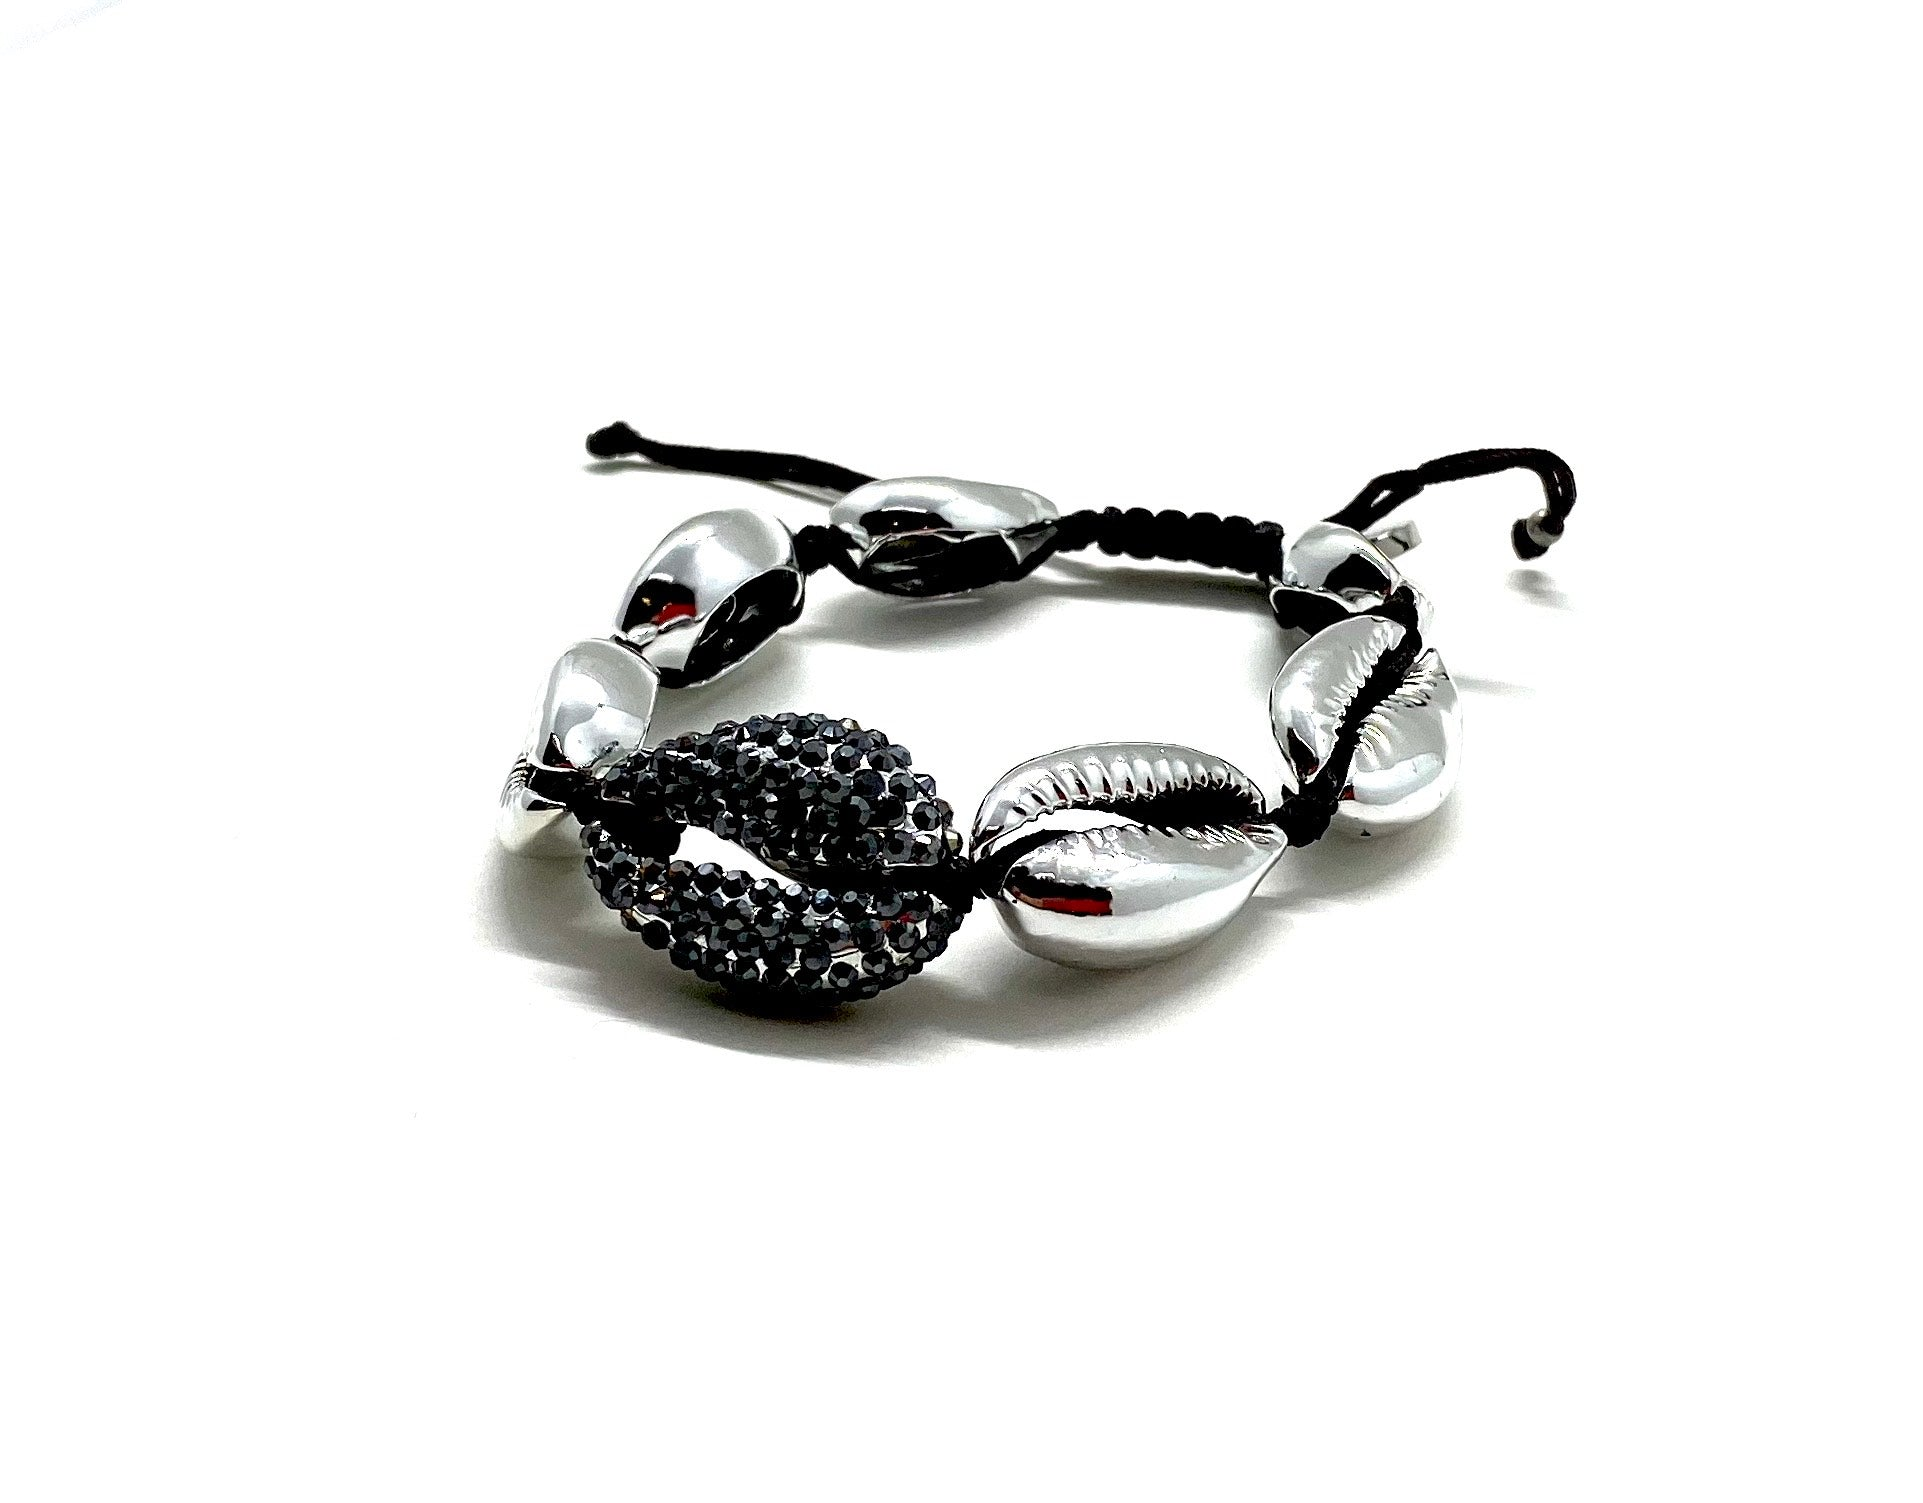 Silver shell bracelet, with hematite Swarovski studded central shell, and black cord